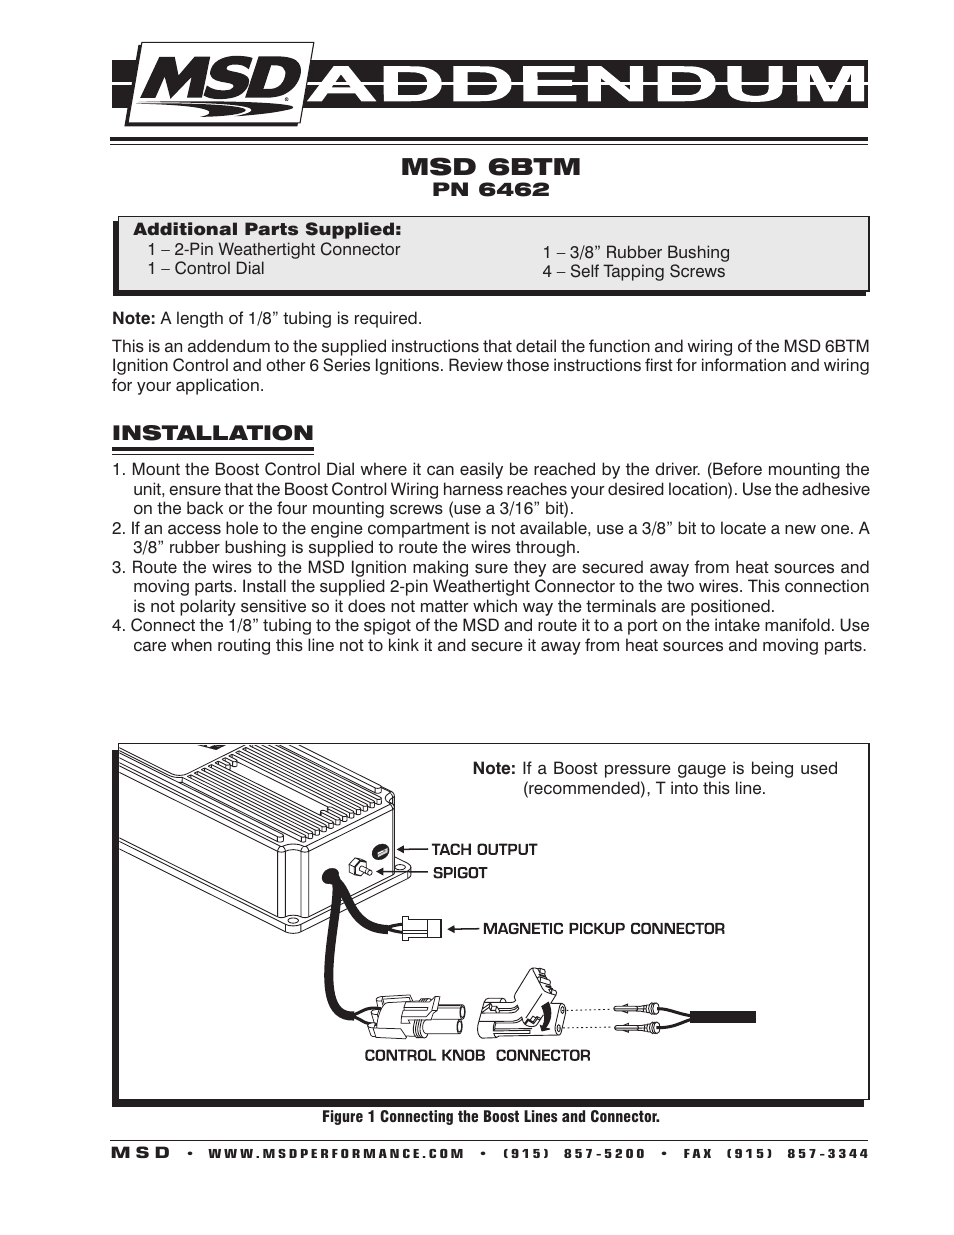 msd 6462 6 btm boost timing master page1?resize\\\\\\\\\\\\\\\\\\\\\\\\\\\\\\\=665%2C861 msd mc4 wiring diagram united pacific wiring diagram \u2022 edmiracle co msd digital 6 wiring diagram at pacquiaovsvargaslive.co